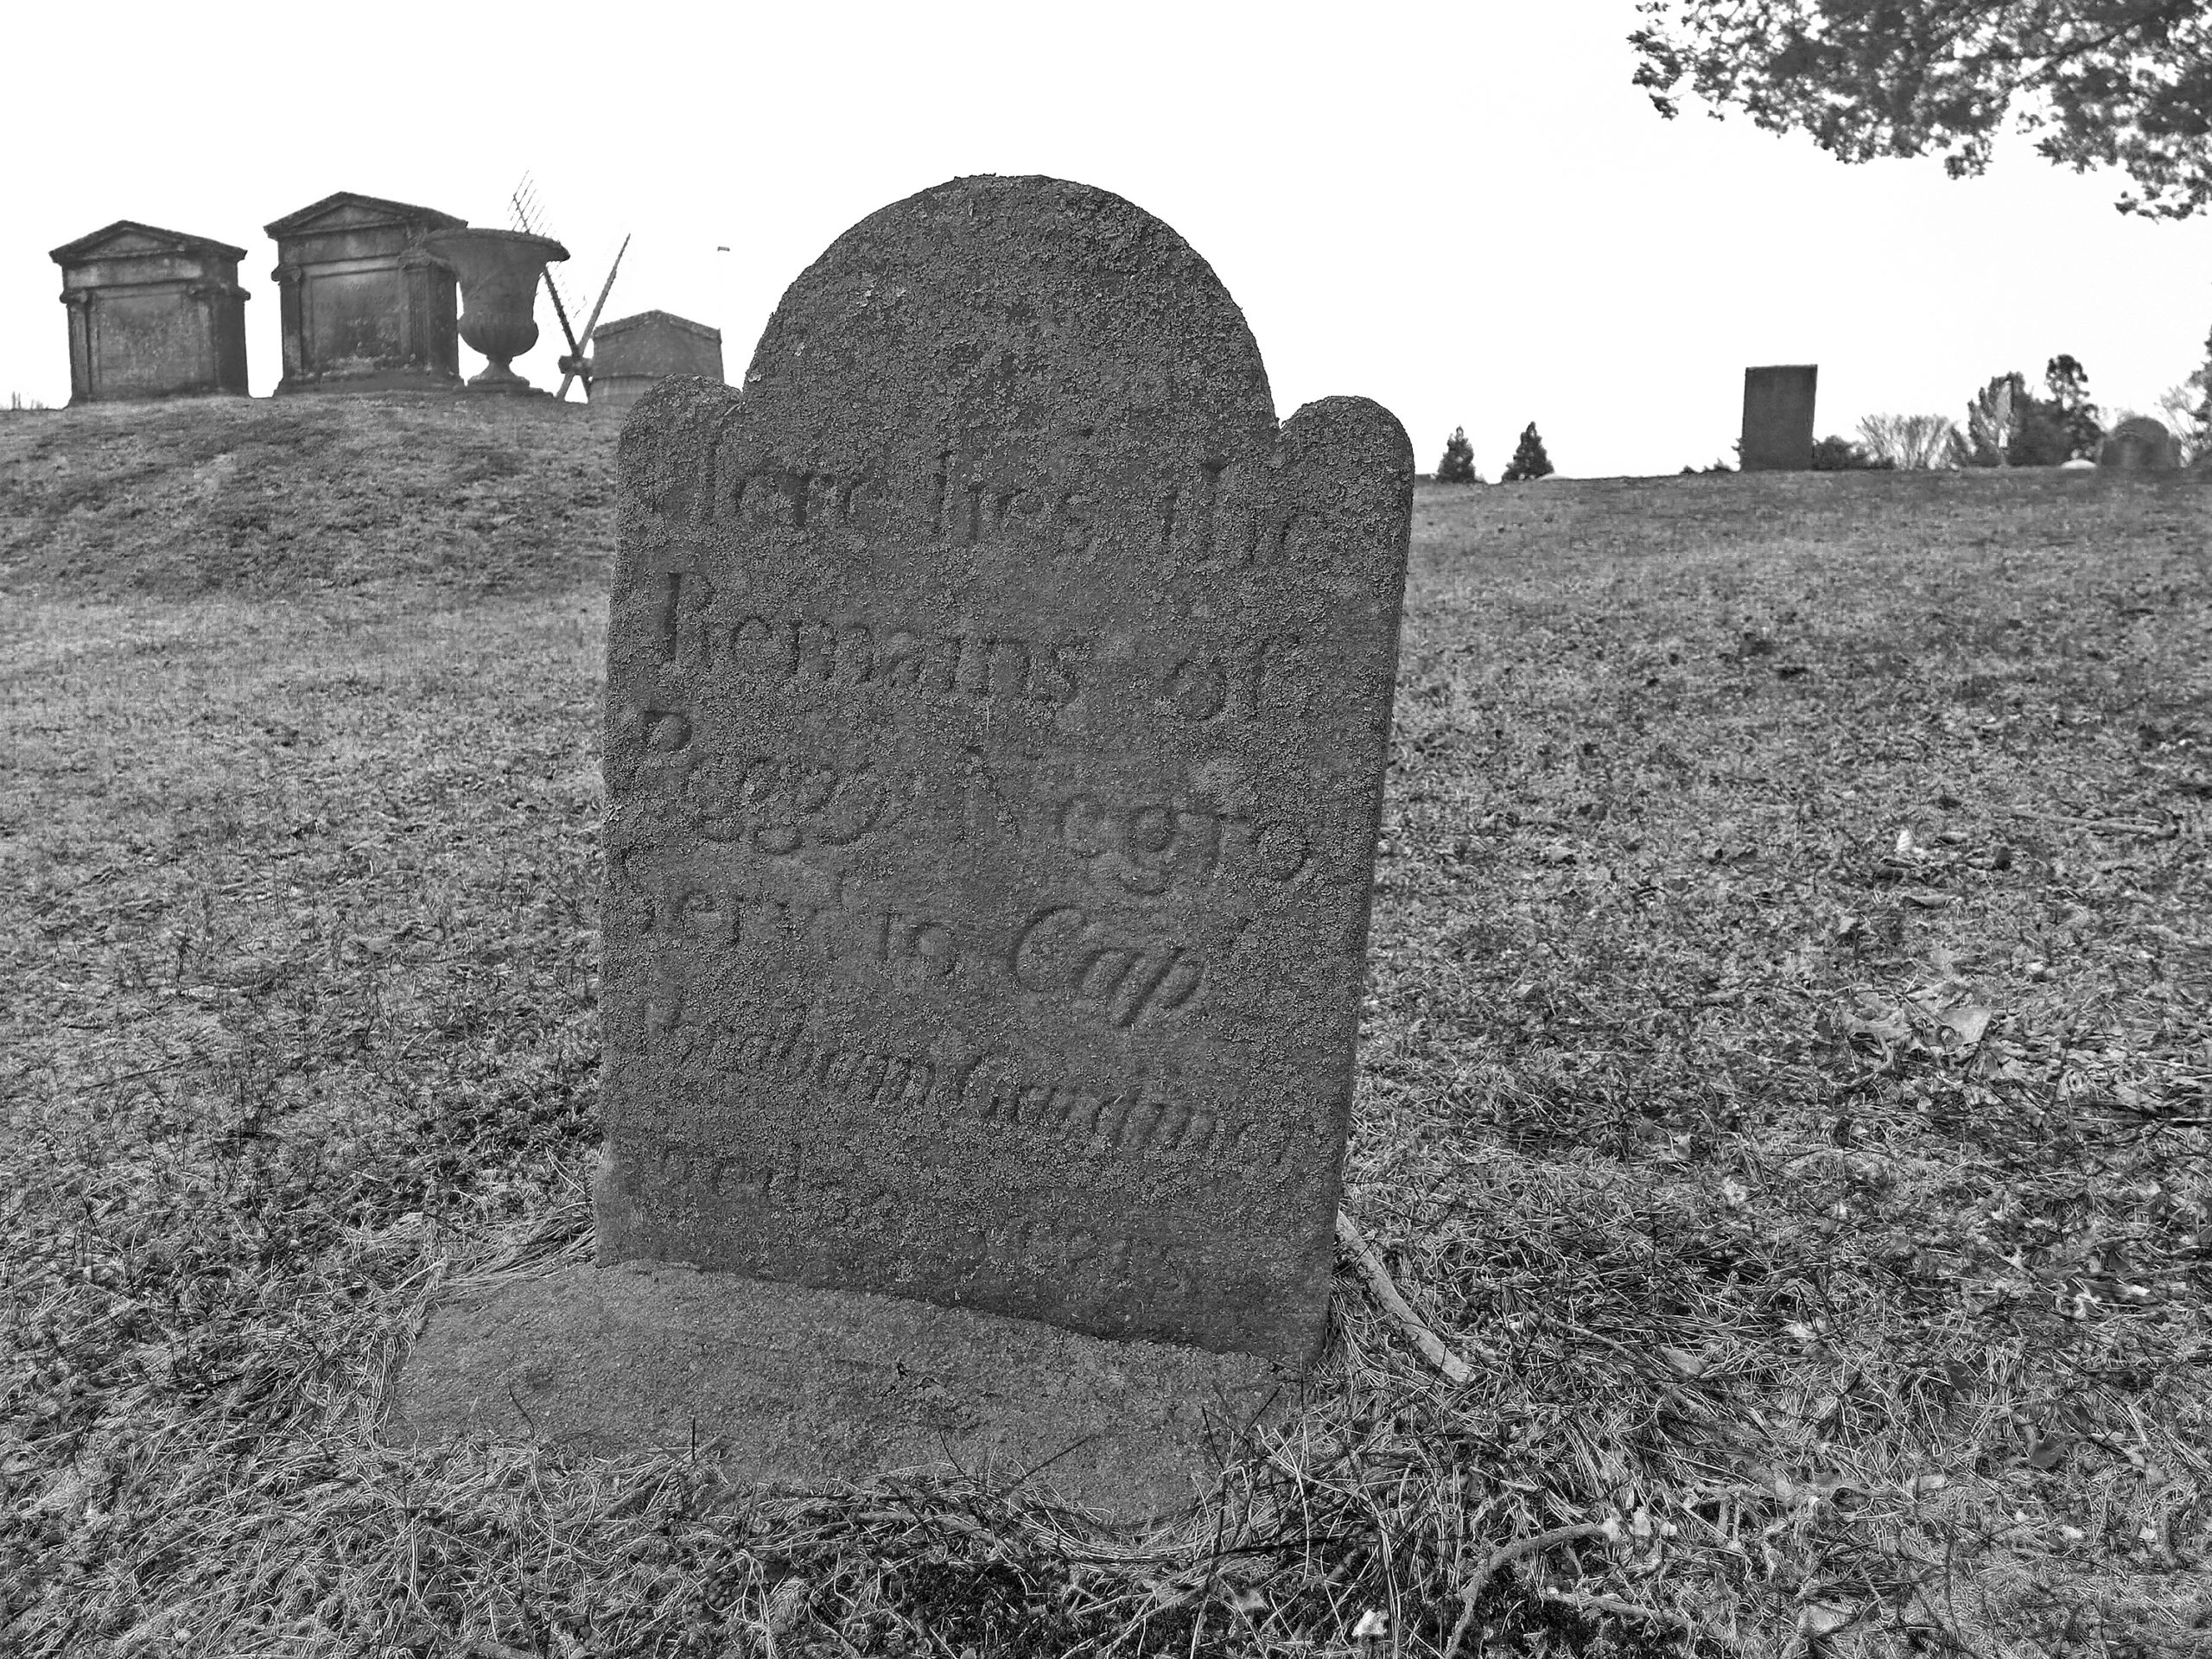 Peggy is one of only two to have the only known headstones for people who had been enslaved in the Town of East Hampton, out of hundreds who we now know lived here.                                            Courtesy Plain Sight Project